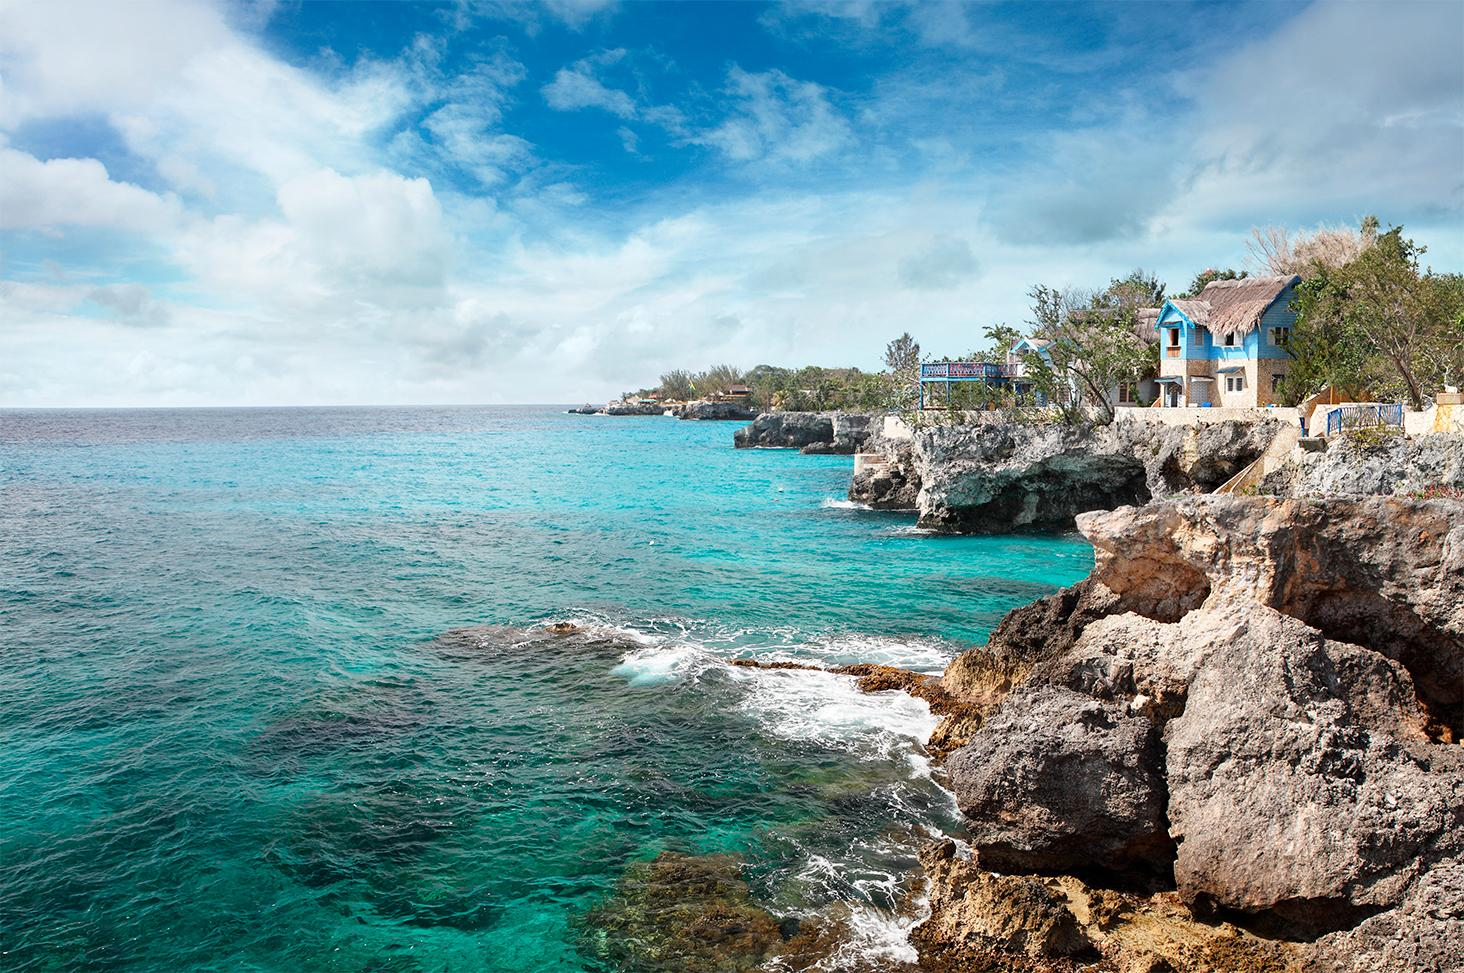 Coastline of Negril Jamaica